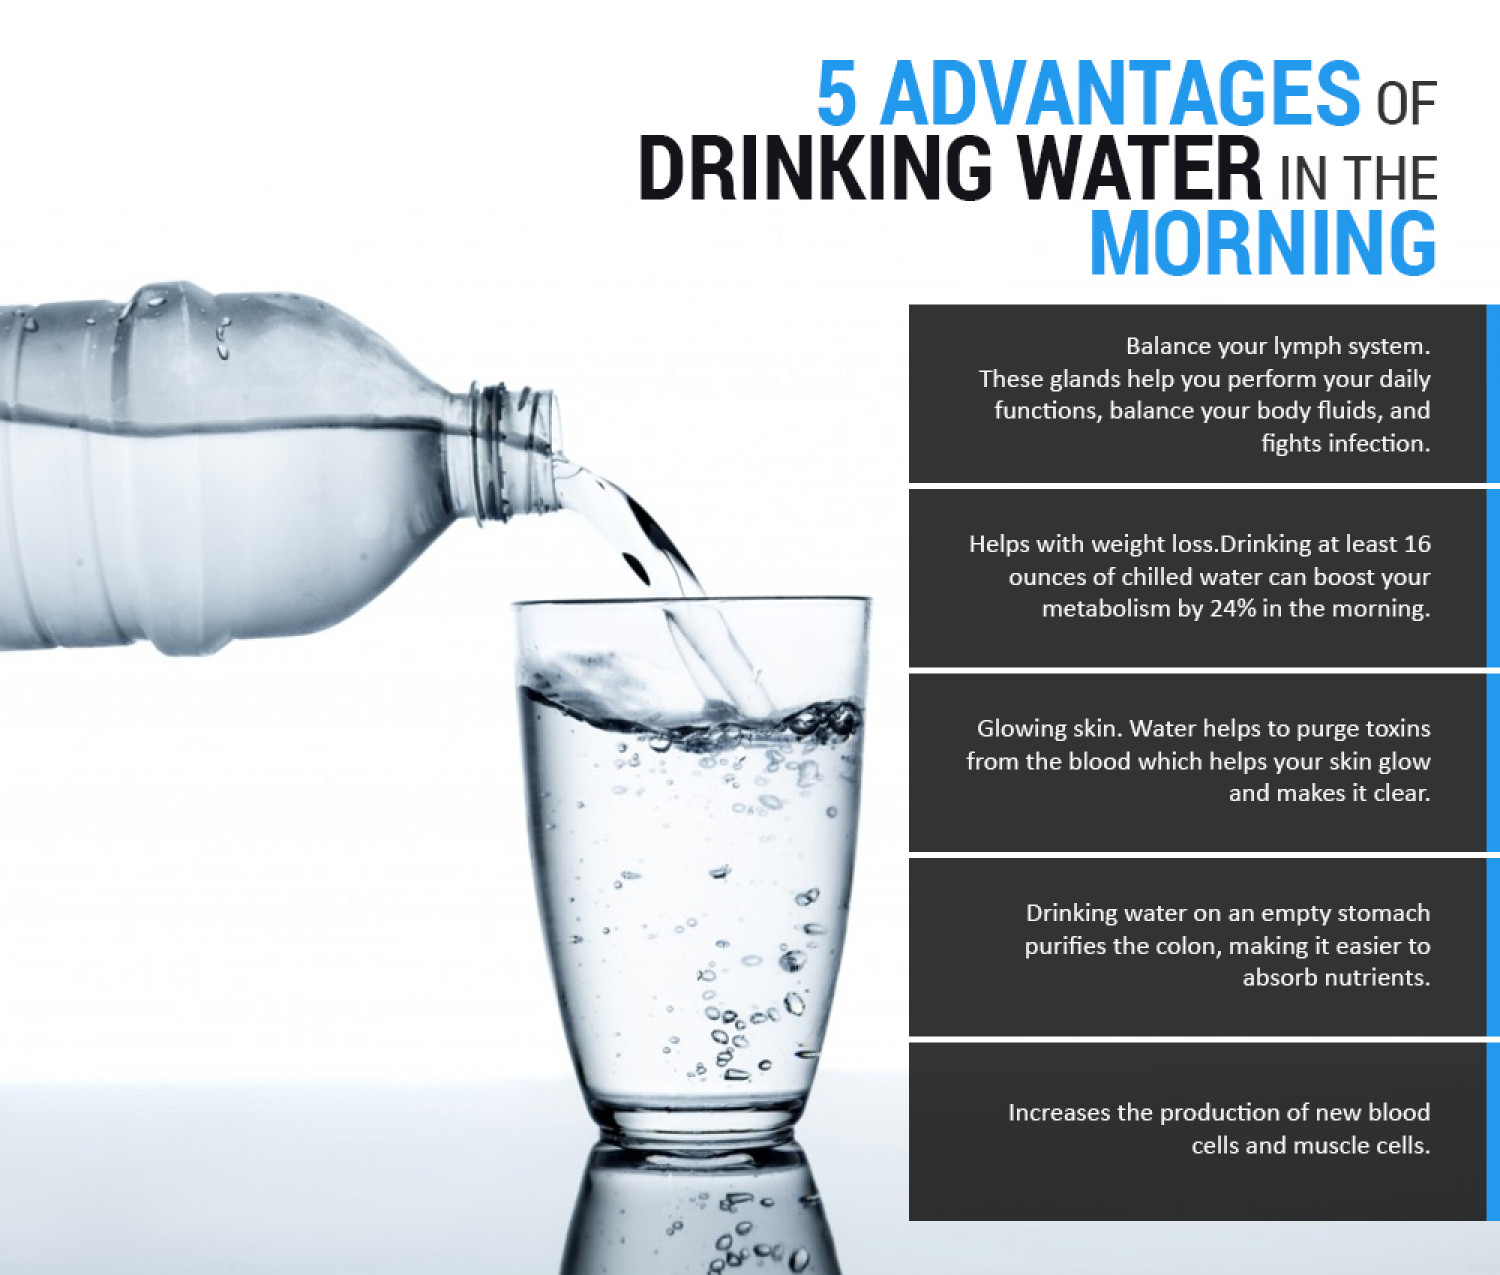 Drinking water in the morning and its benefits Infographic